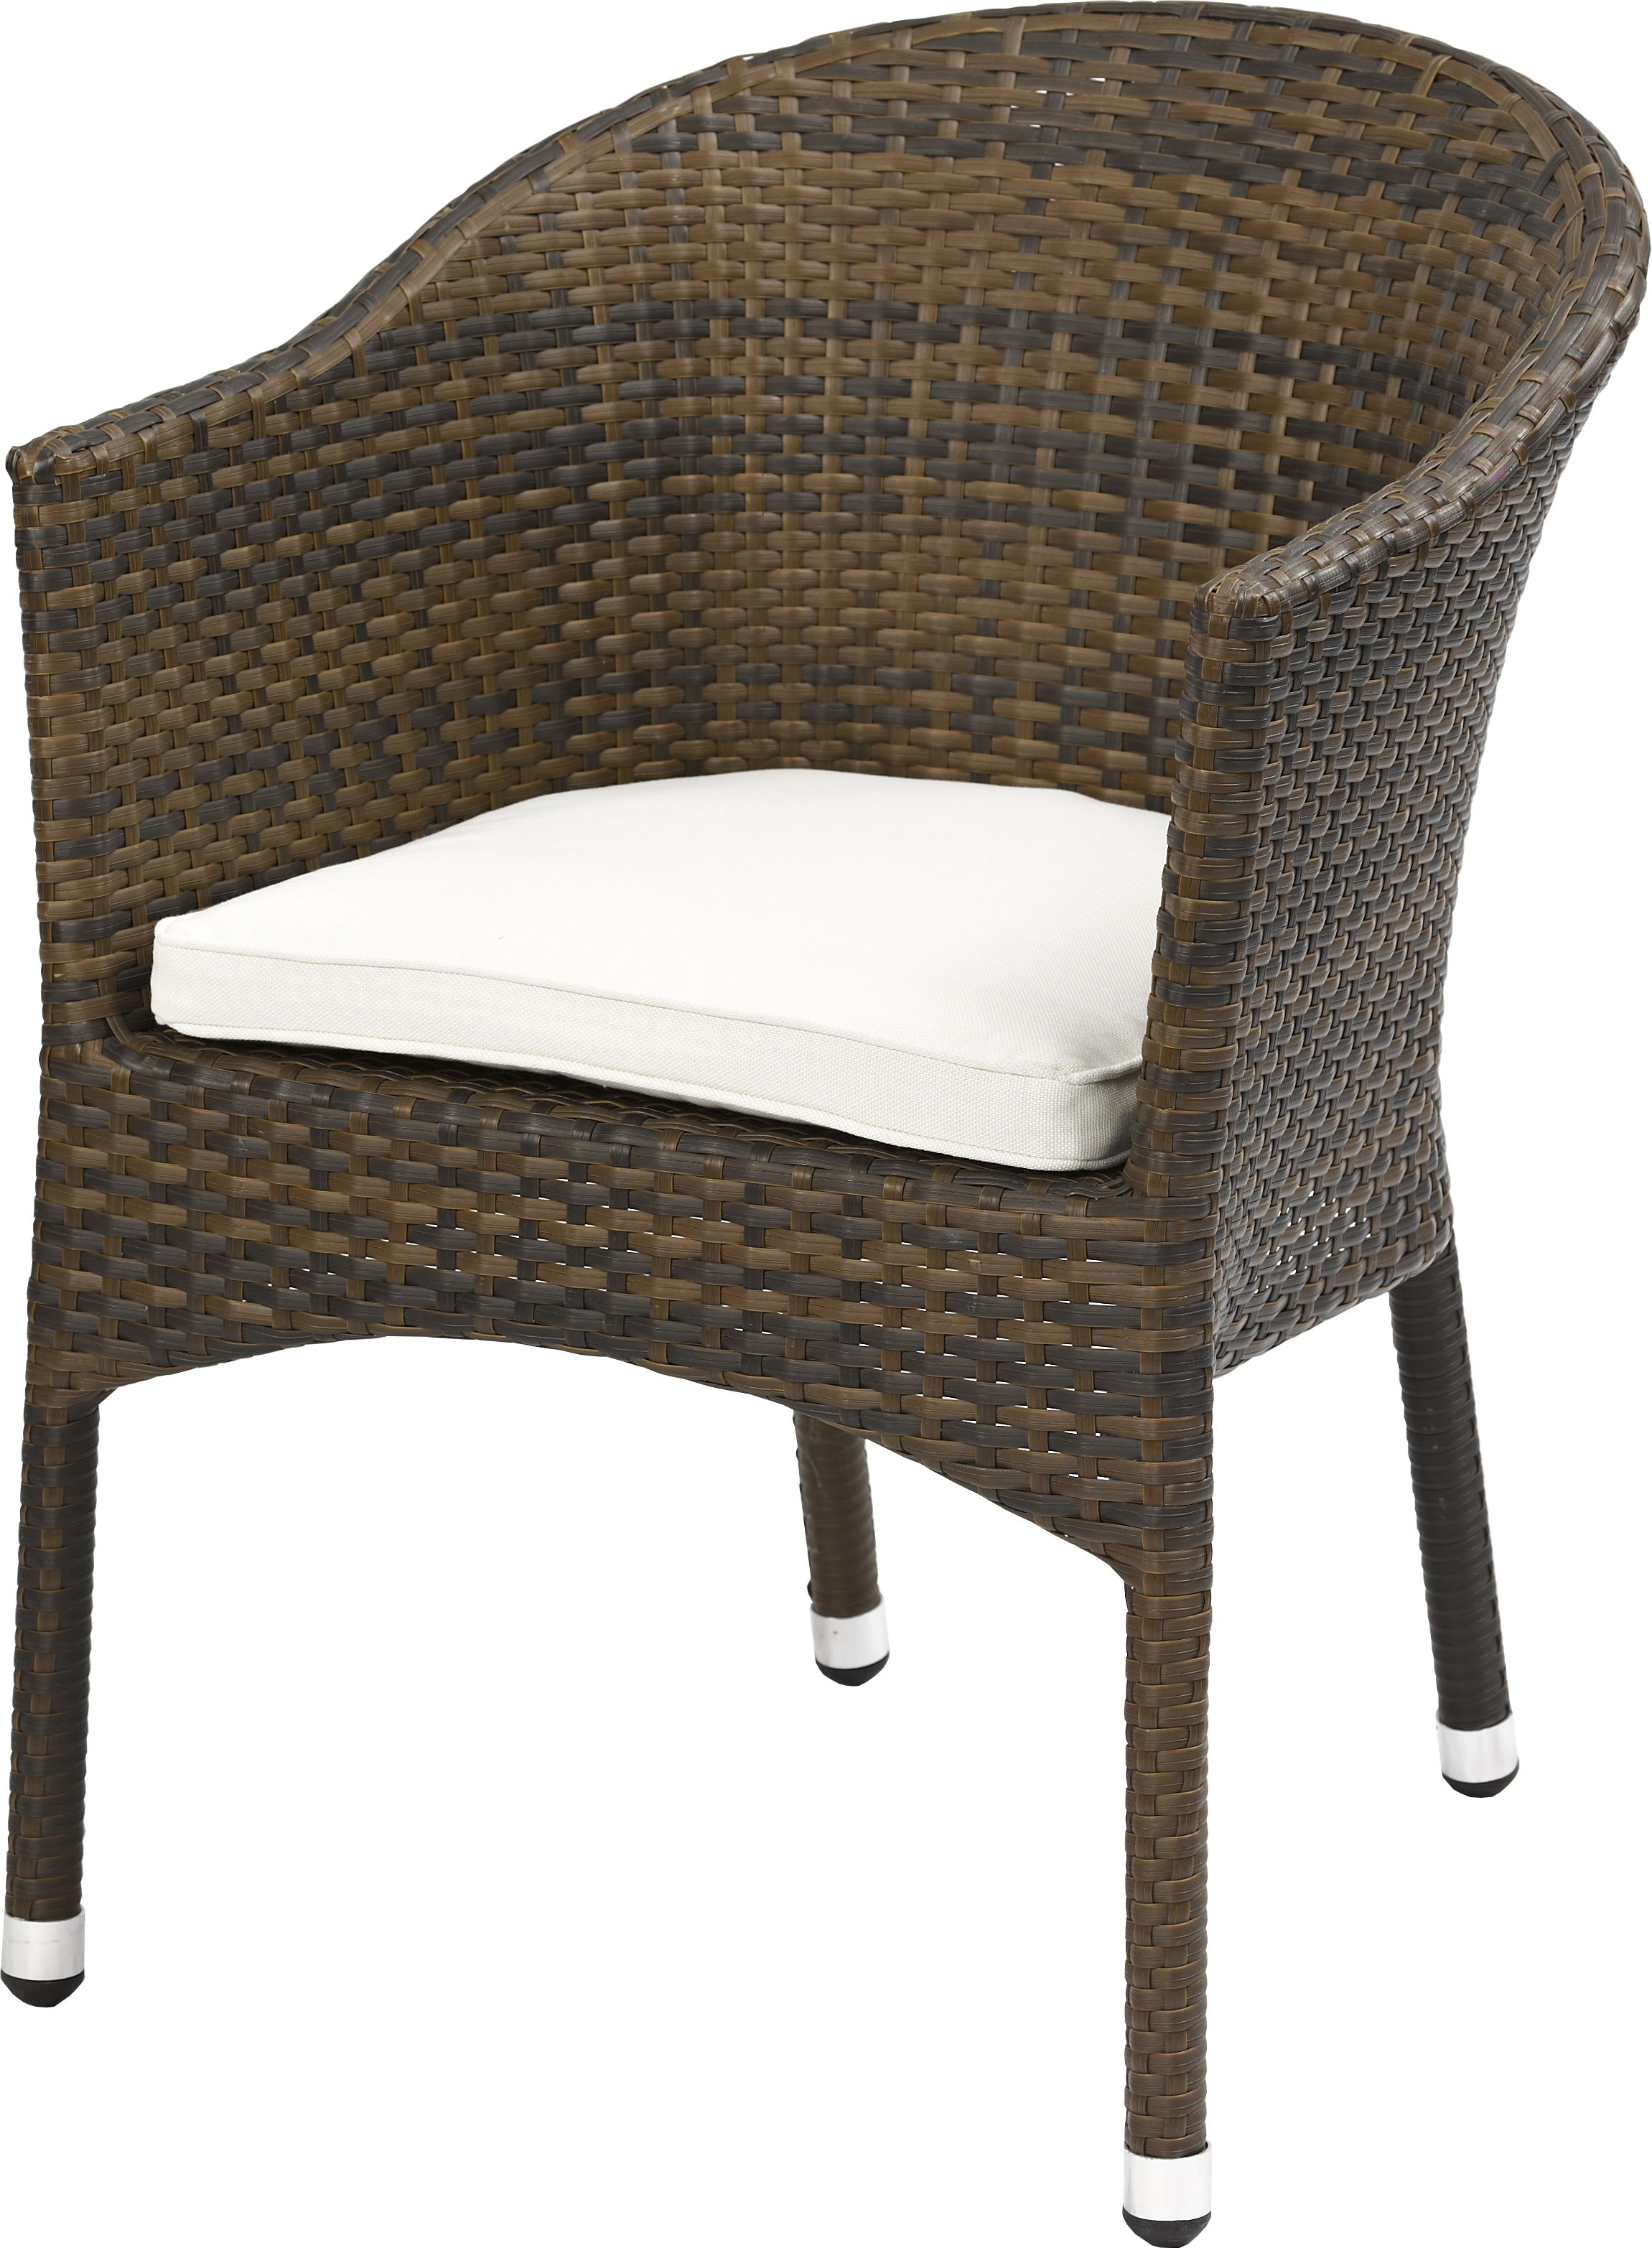 Rattan sthle gastronomie latest gartenstuhl dunkelbraun for Loungemobel outdoor kissen